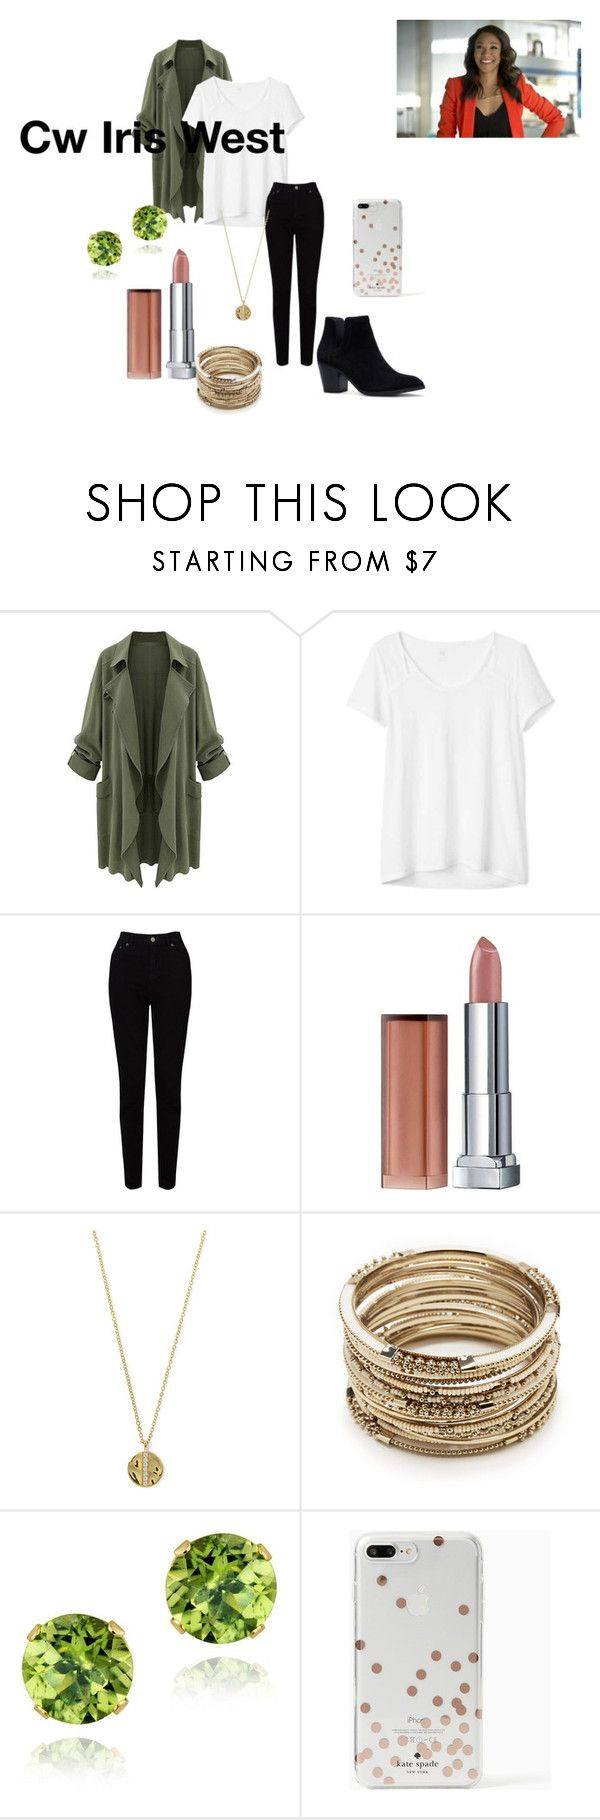 """""""Iris West Allen"""" by aisaacs19-i ❤ liked on Polyvore featuring Gap, EAST, Maybelline, Senso, Sole Society, Glitzy Rocks, Kate Spade, women, cw and fashionset"""